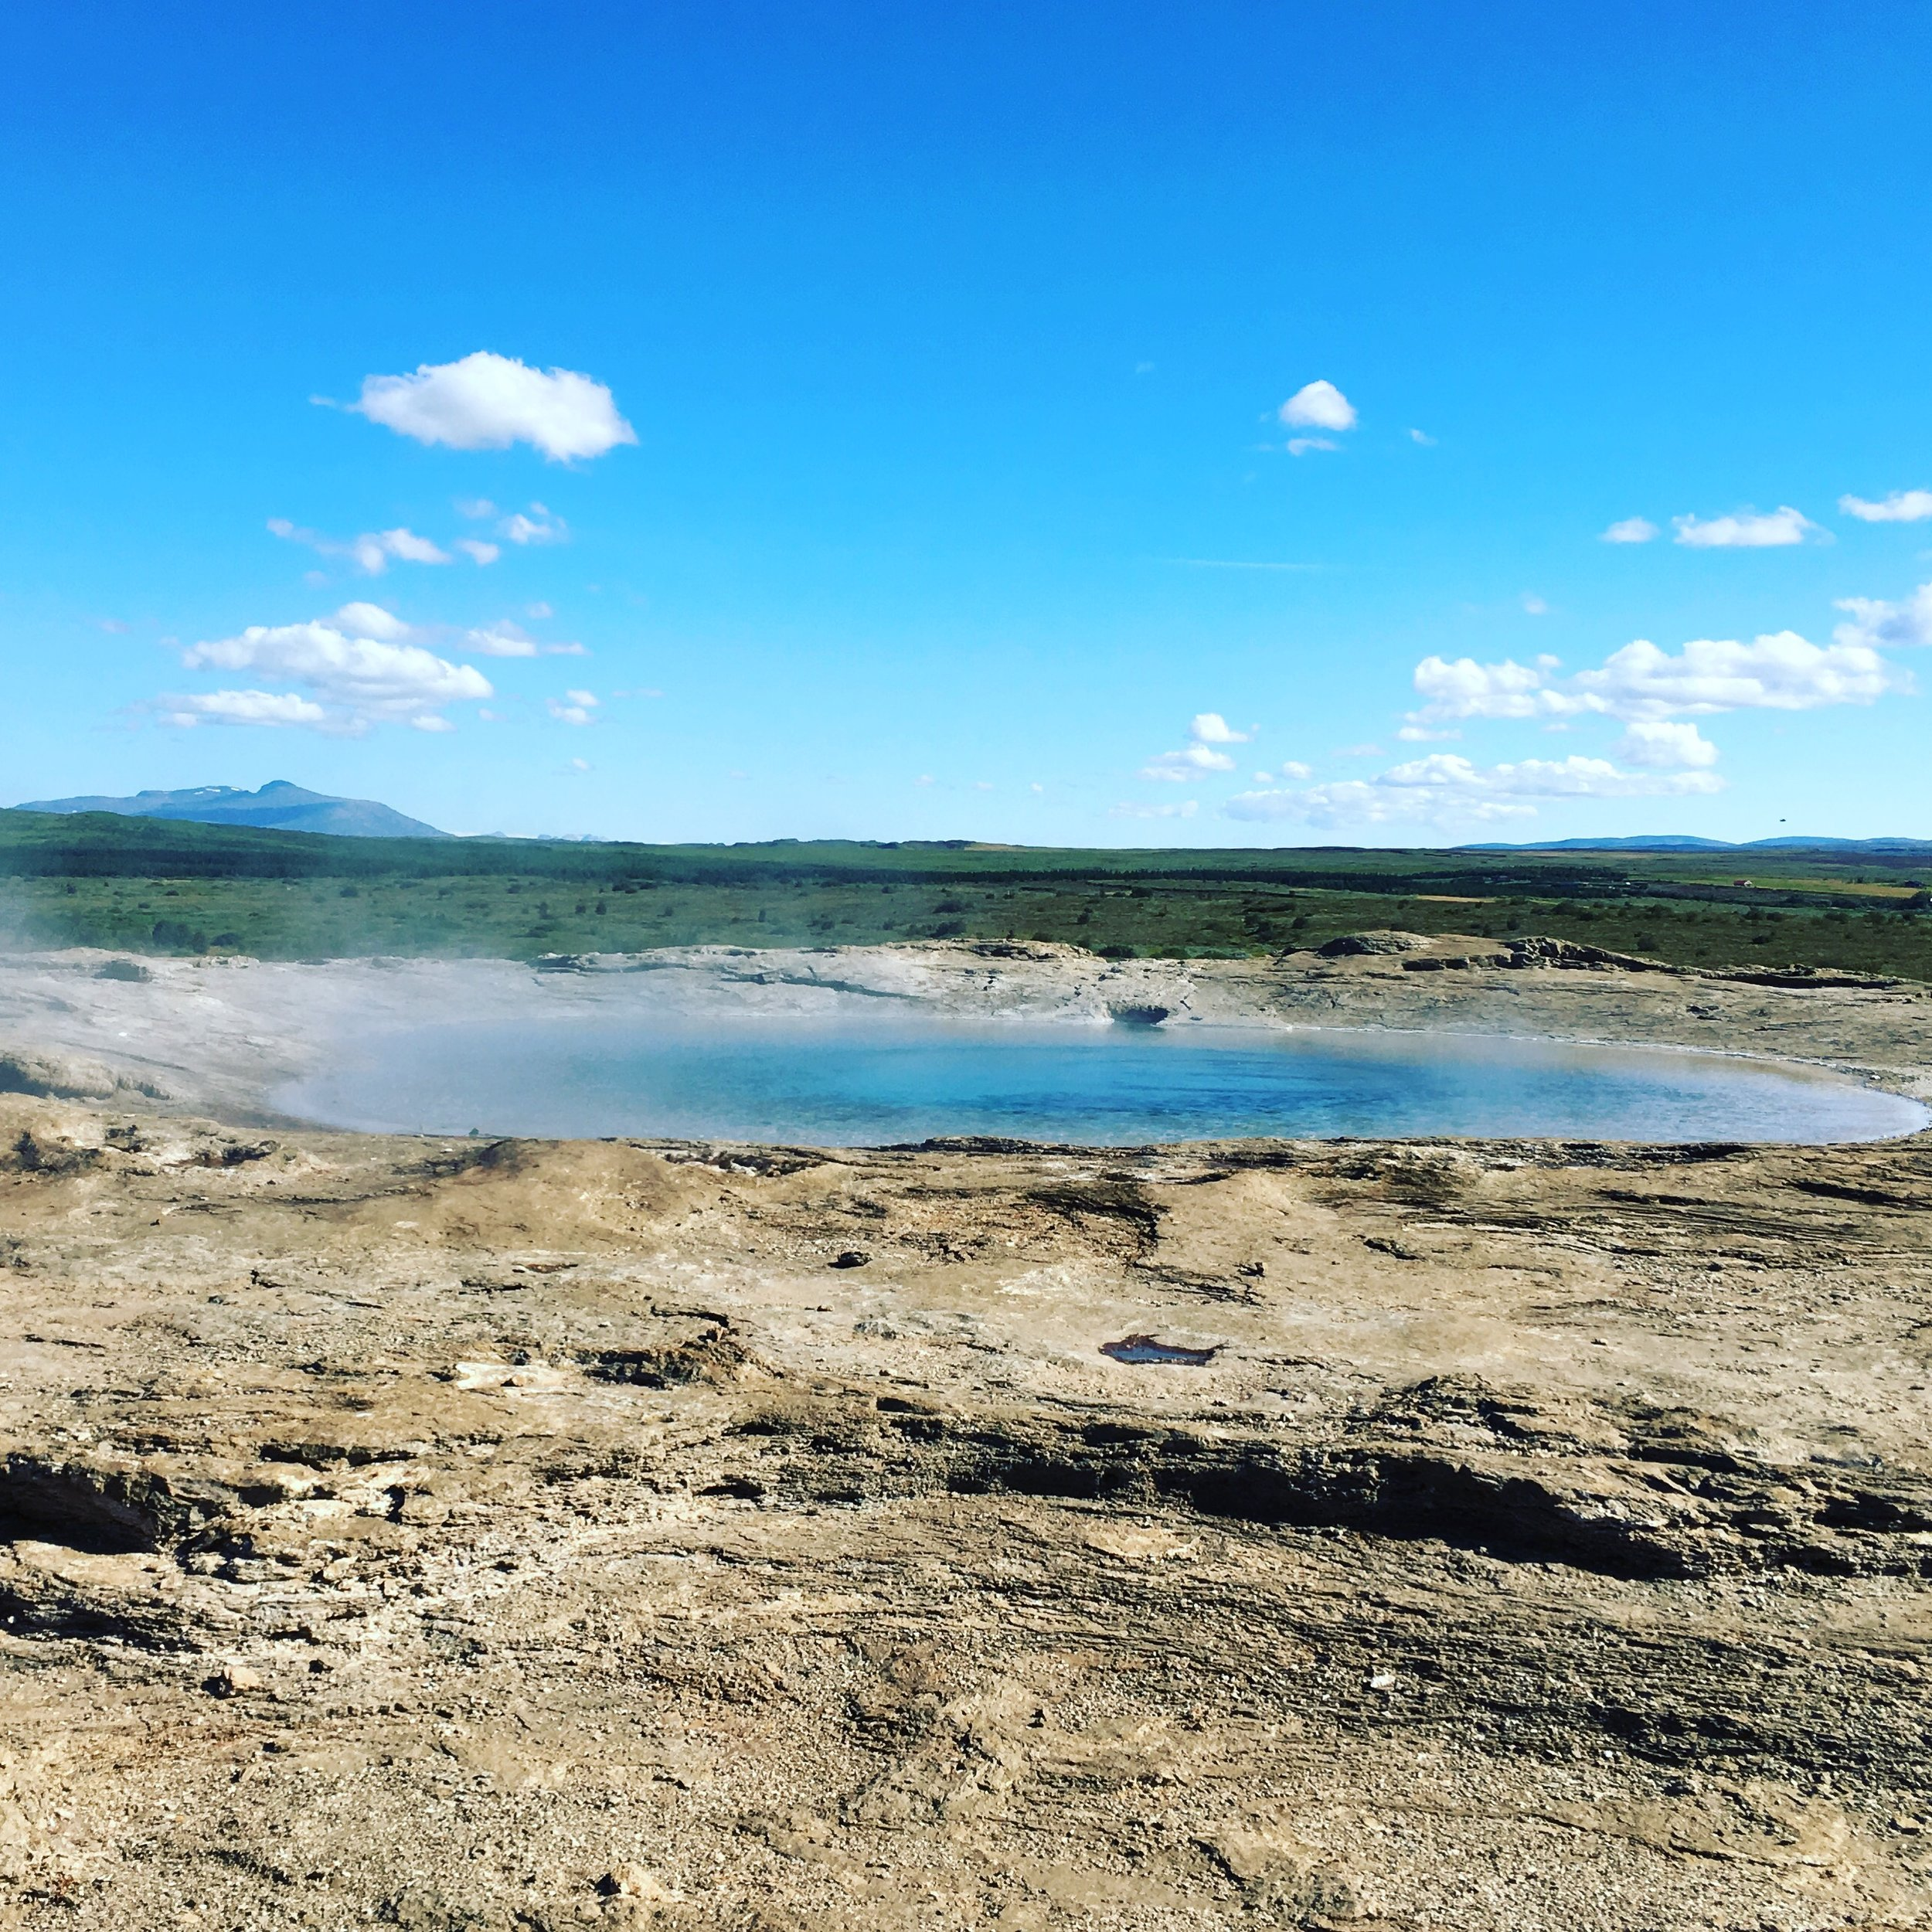 At the Geysir hot springs